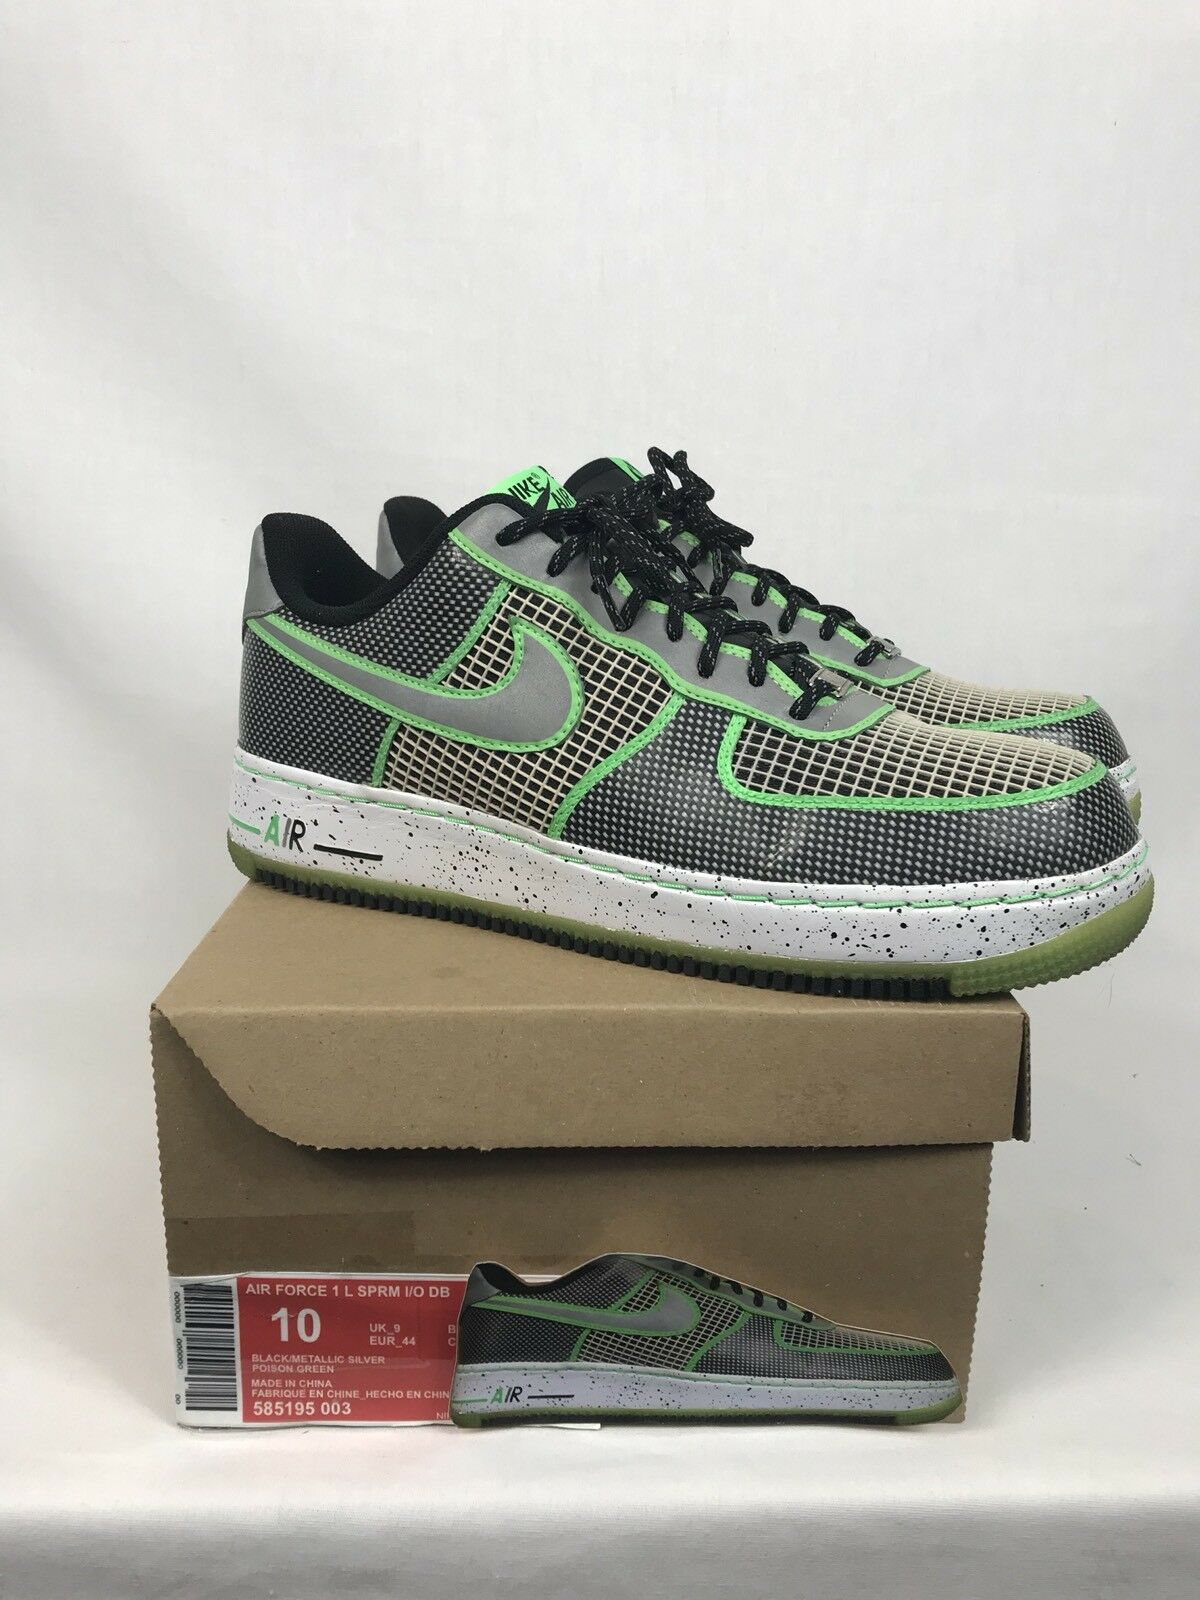 2012 Nike Air Force 1 Low SPRM DB Doernbecher Size 10 W/Rep Box 585195-003